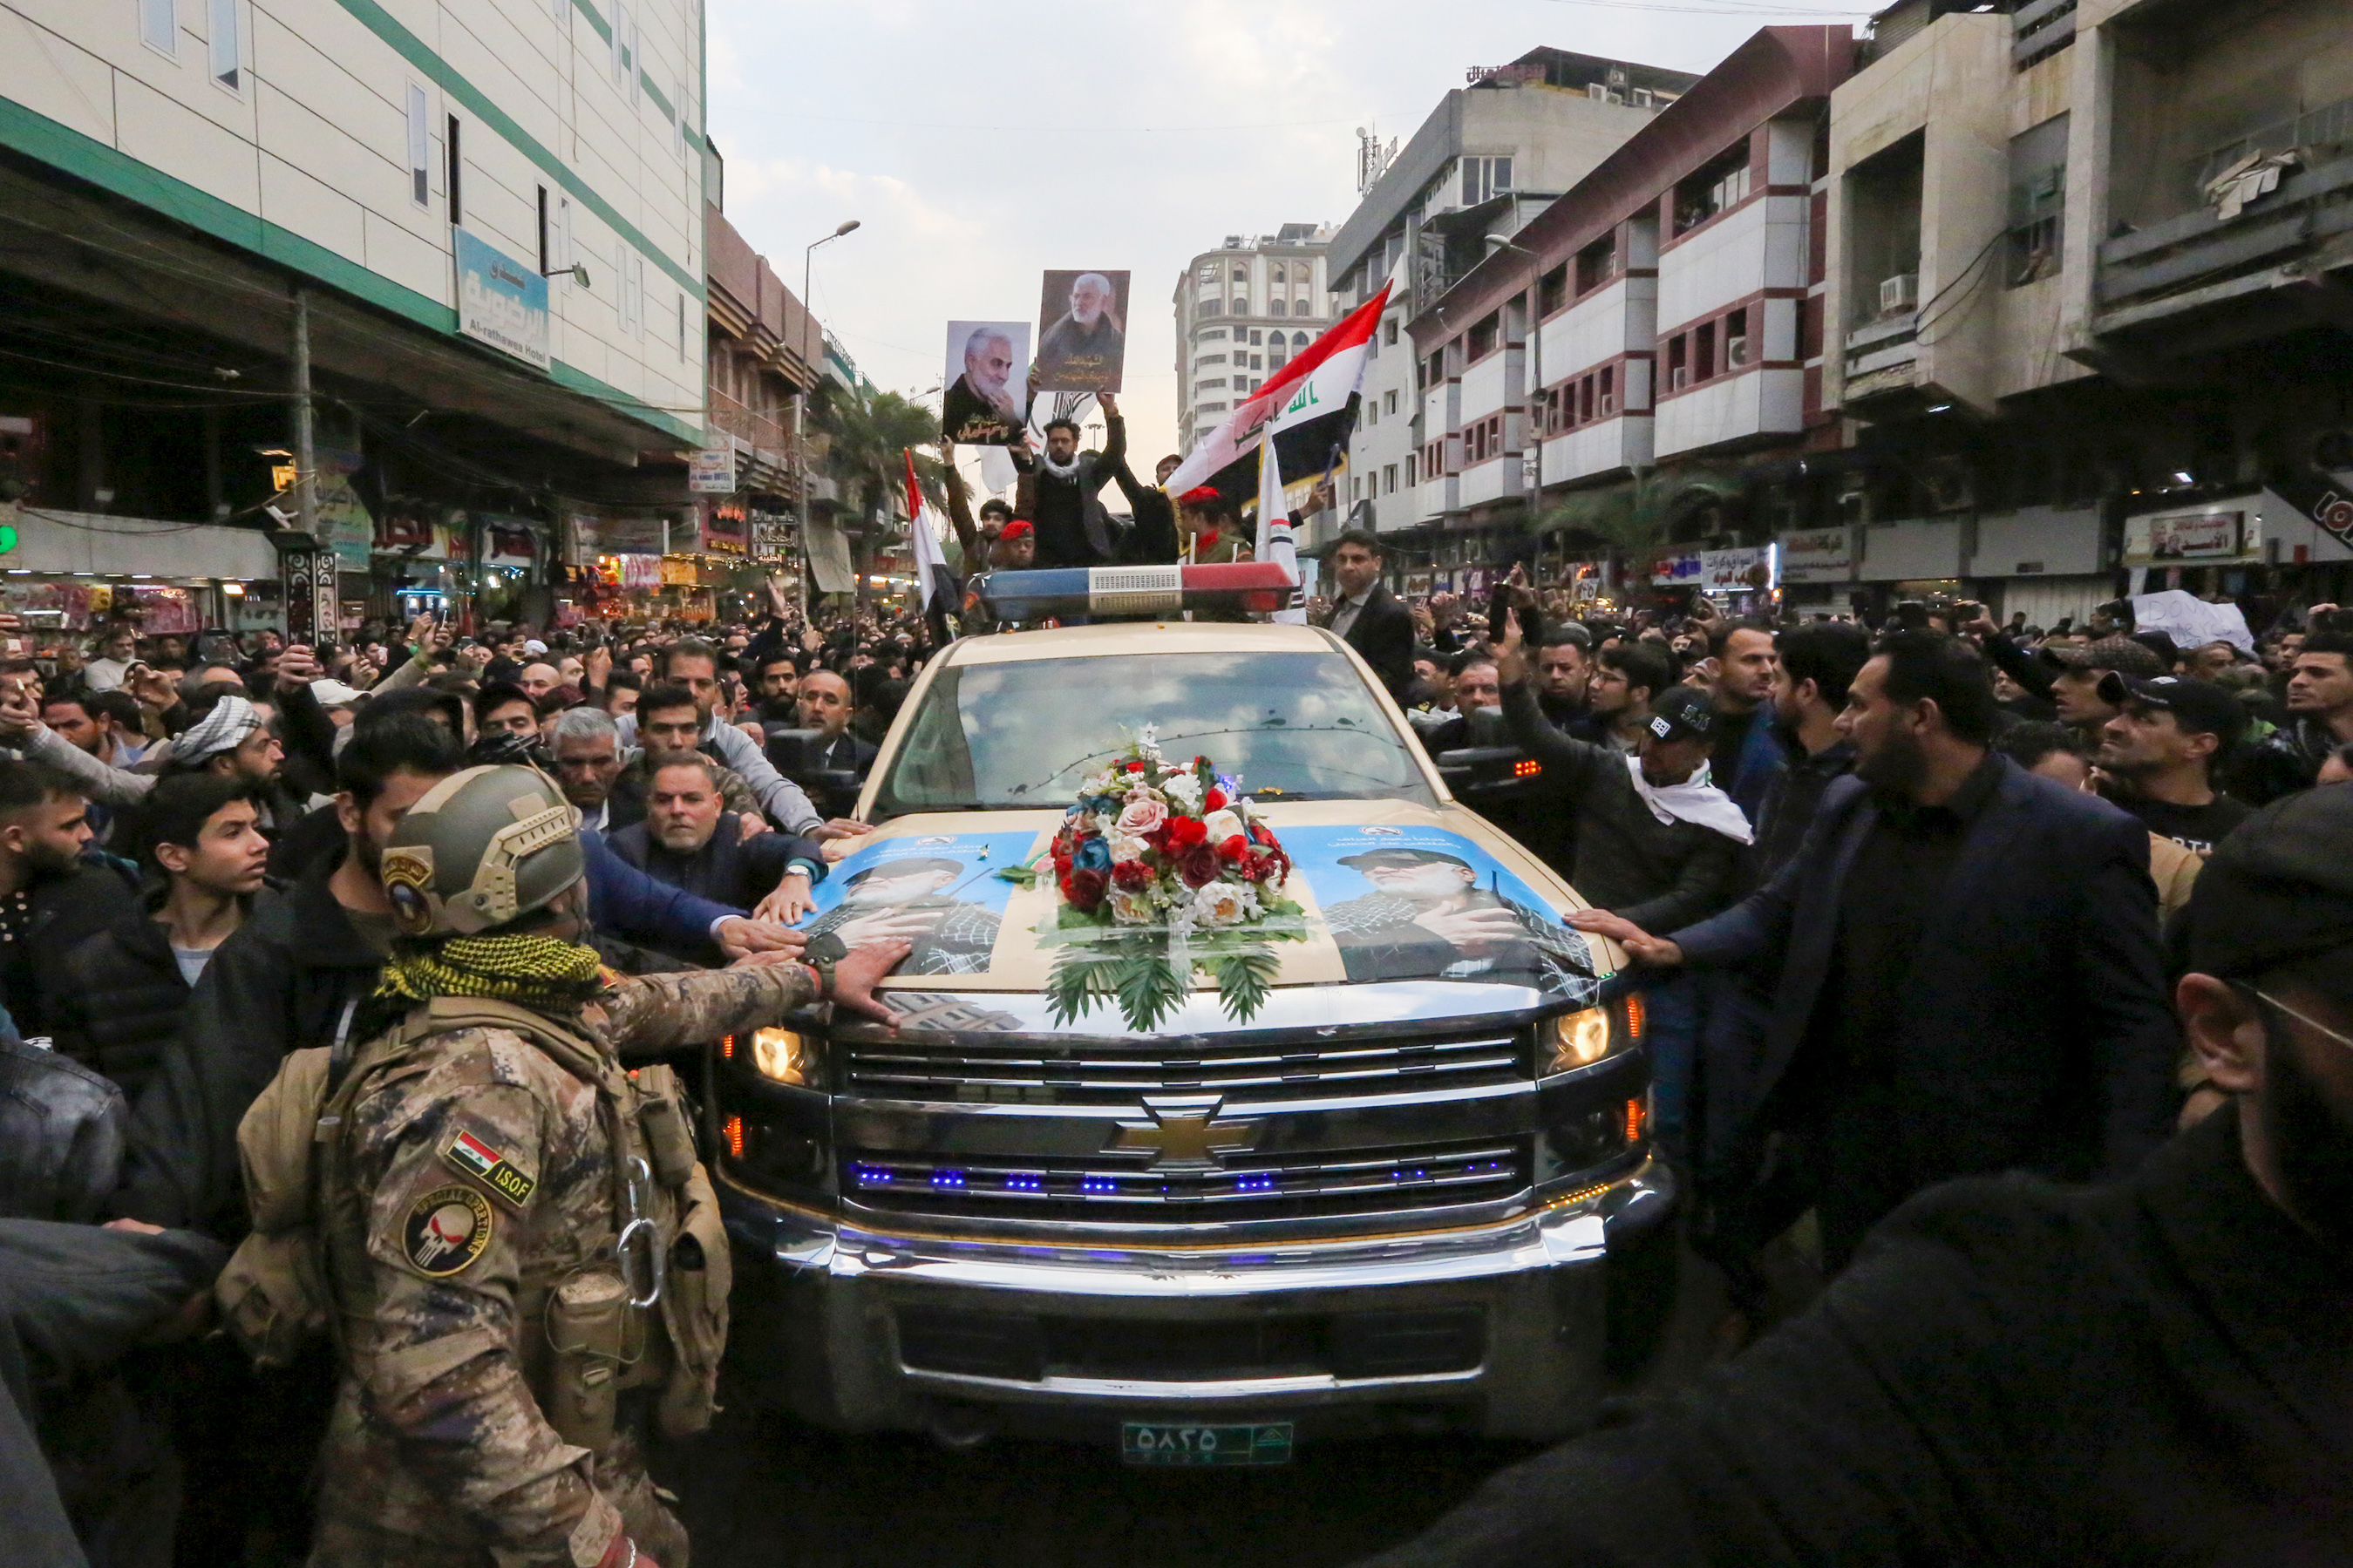 Mourners surround a car carrying the coffin of Iranian commander Qasem Soleimani in Baghdad, on January 4, 2020.